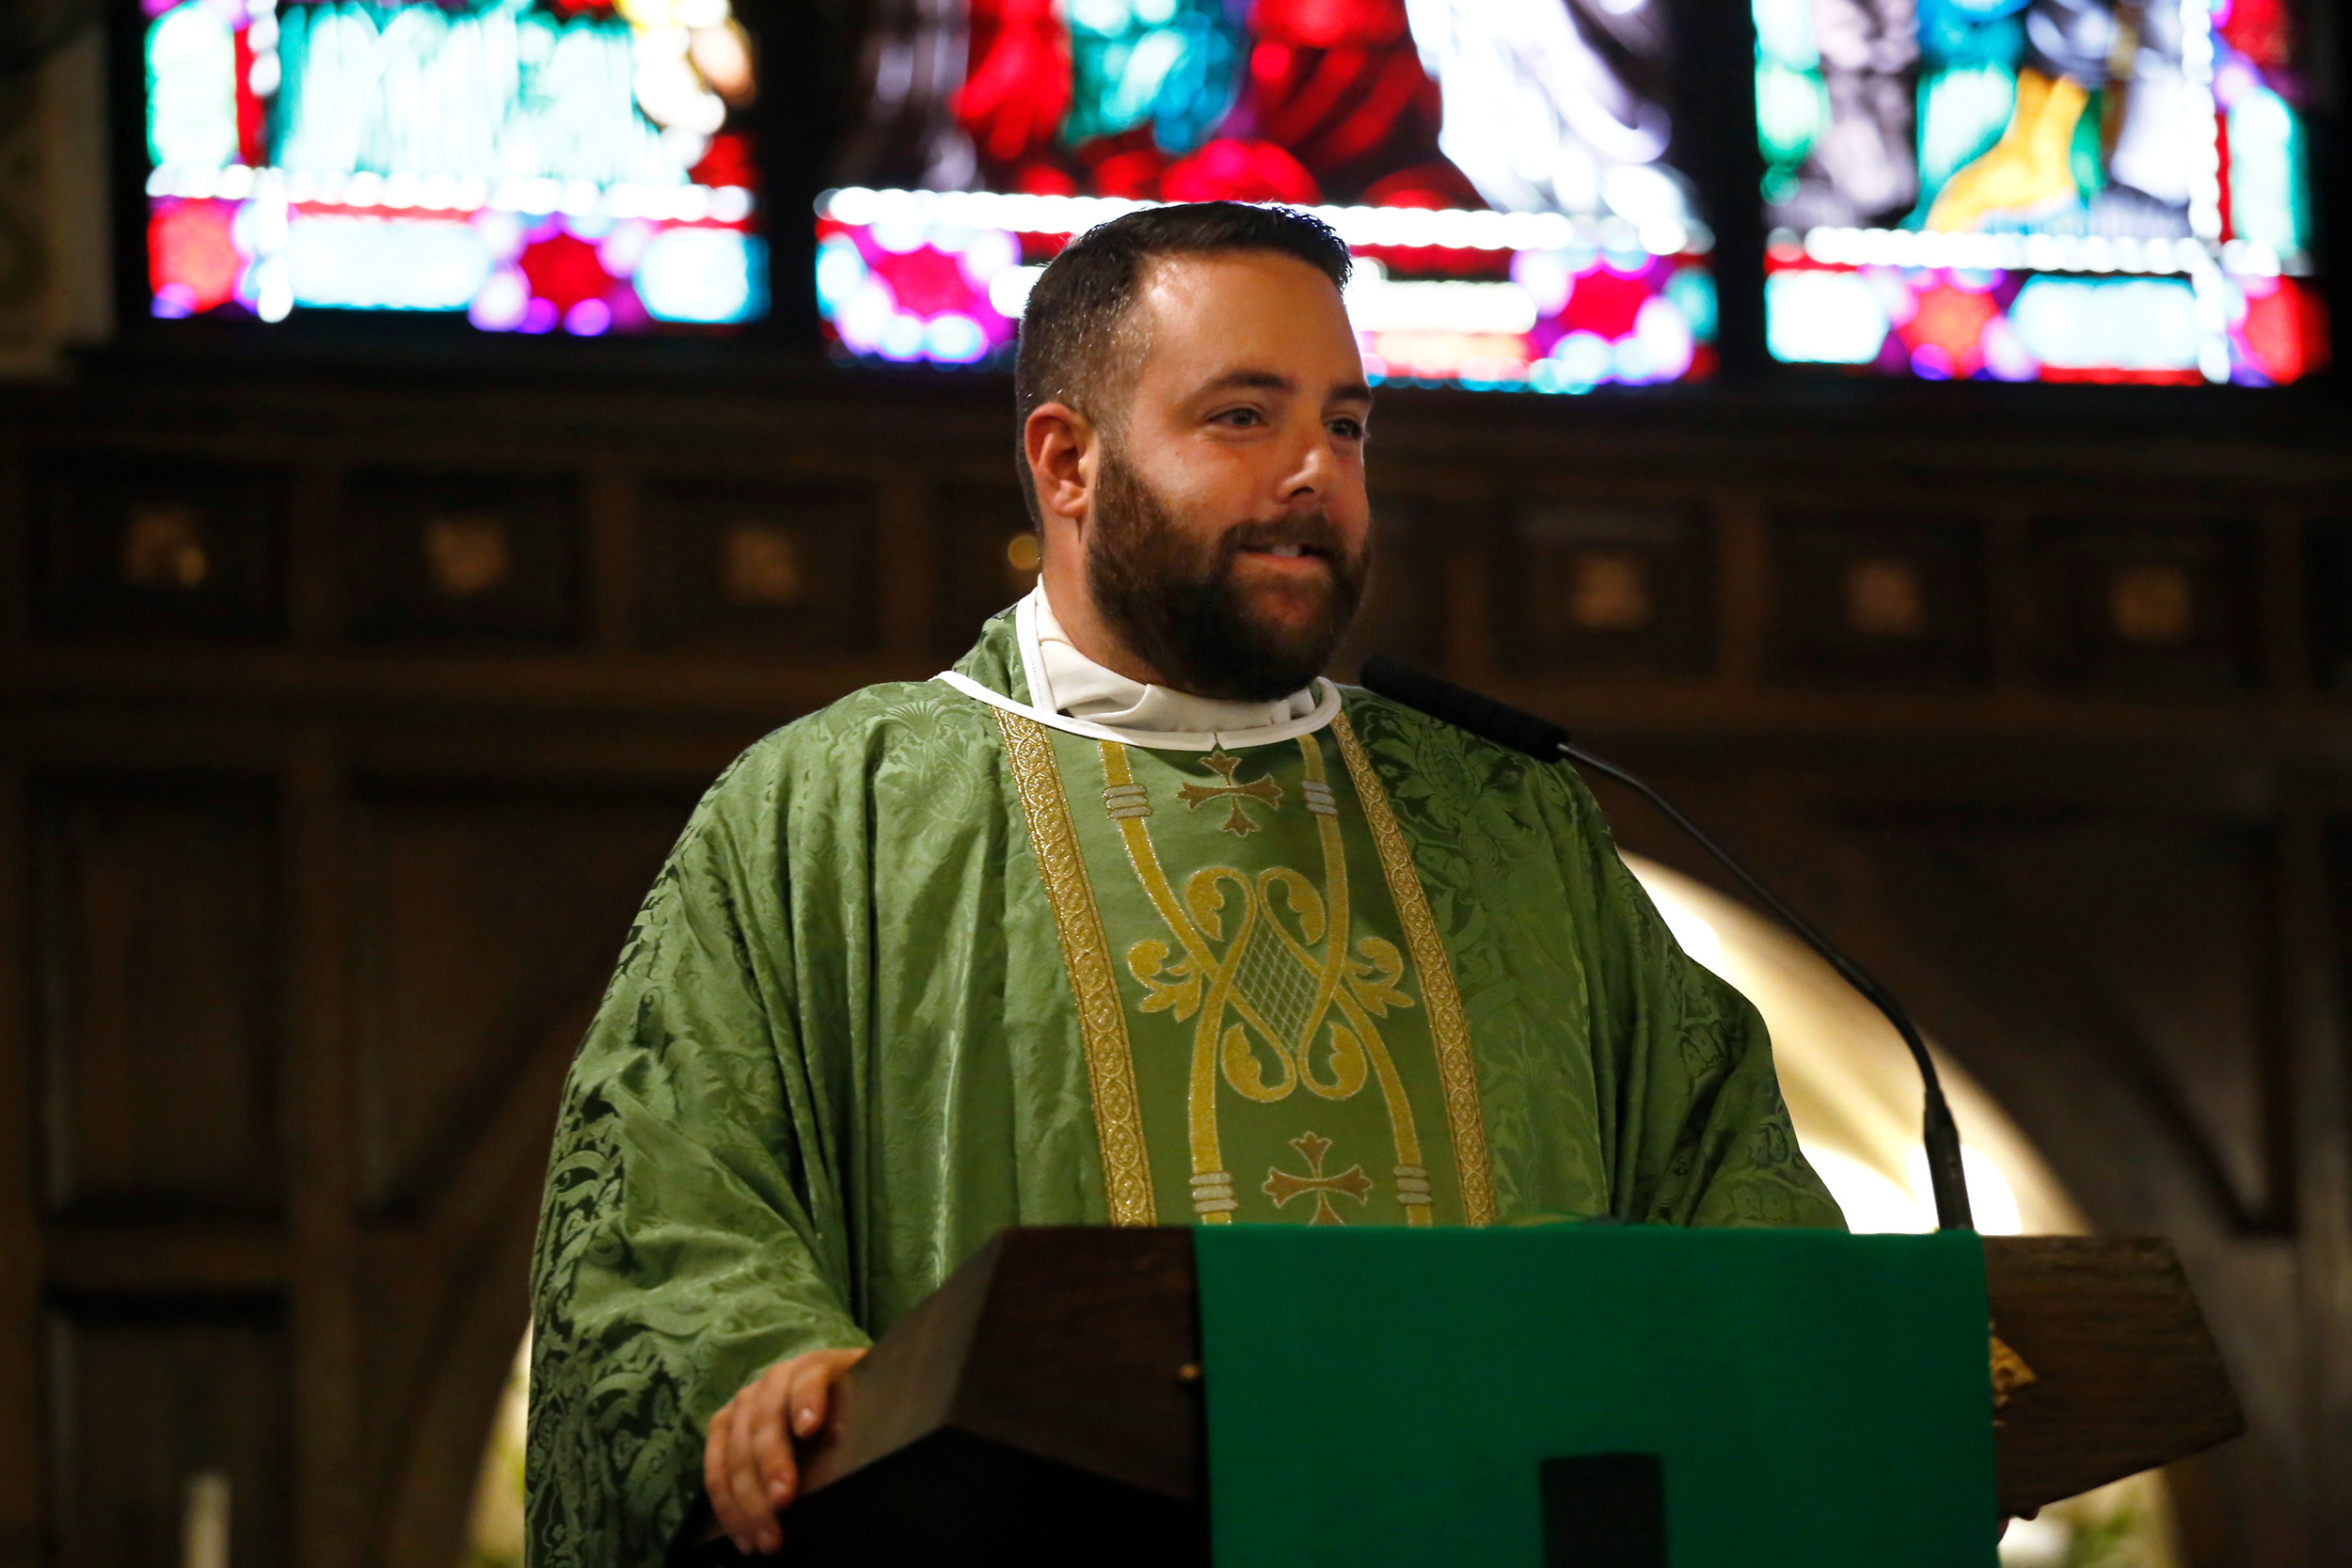 The Rev. Michael Duffy, of Our Lady of Lourdes Church, in Malverne, began his tenure at the parish in 2017.